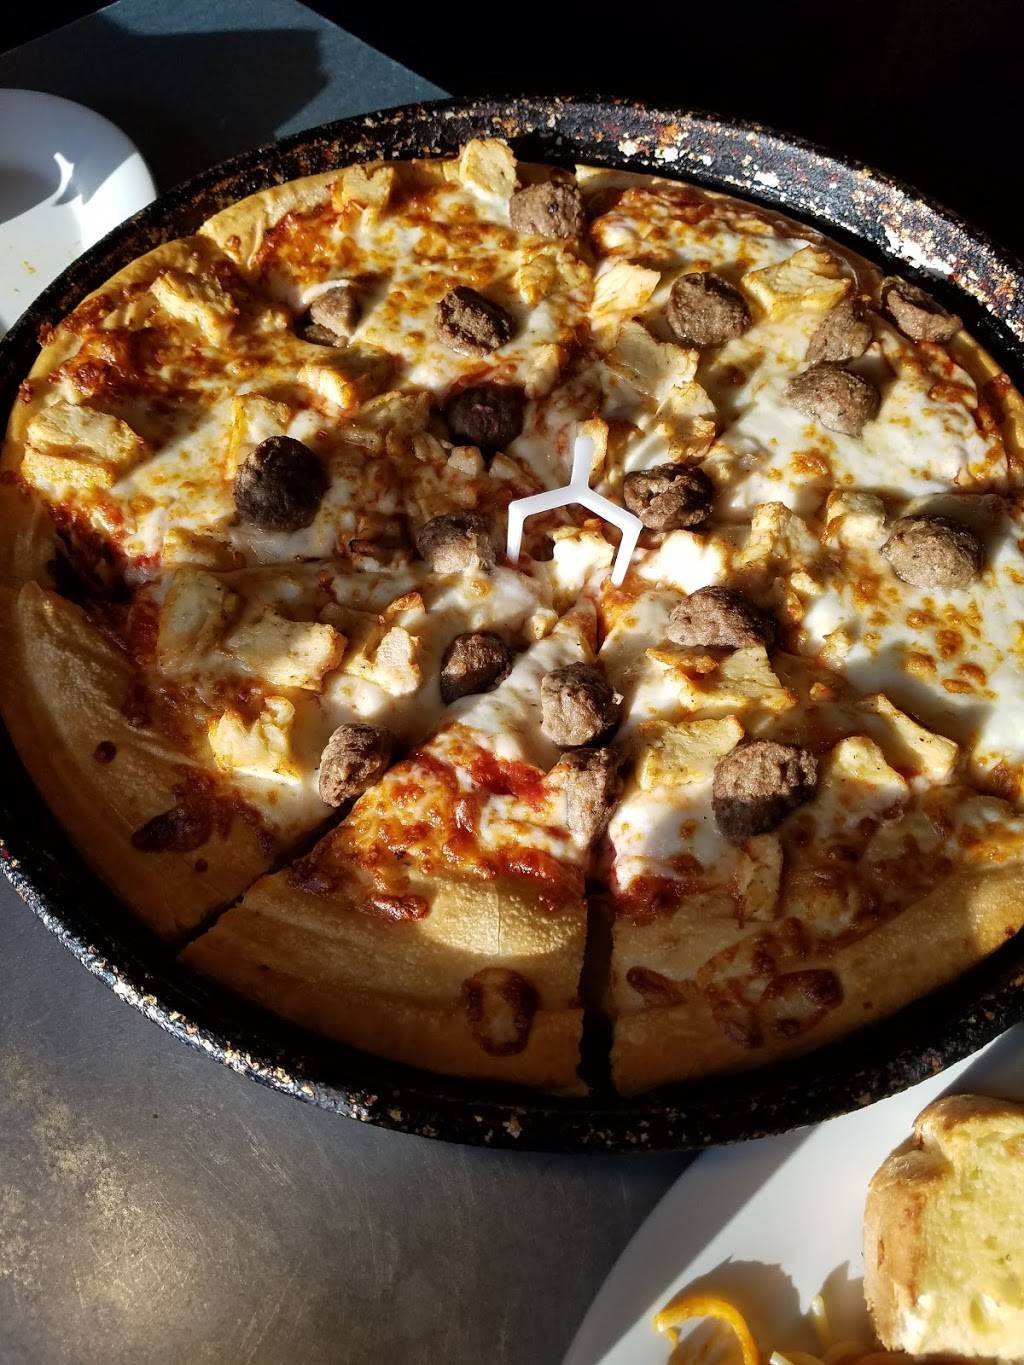 Pizza Hut | restaurant | 637 Hwy 290 E, Hempstead, TX 77445, USA | 9798268001 OR +1 979-826-8001